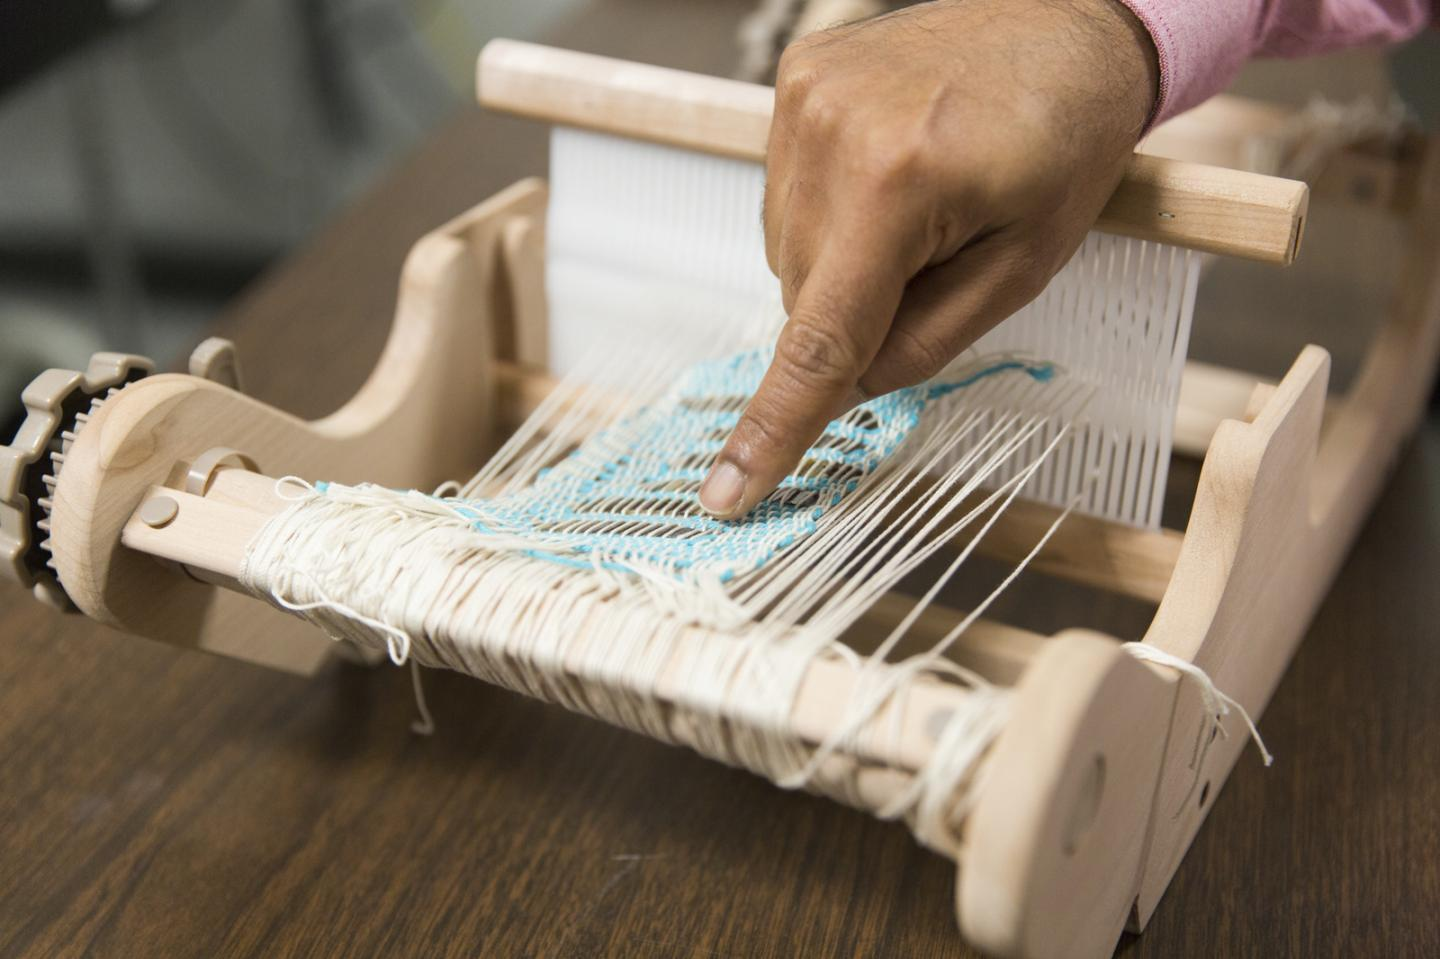 The researchers had to learn to use a loom to weave their power-storing fabric